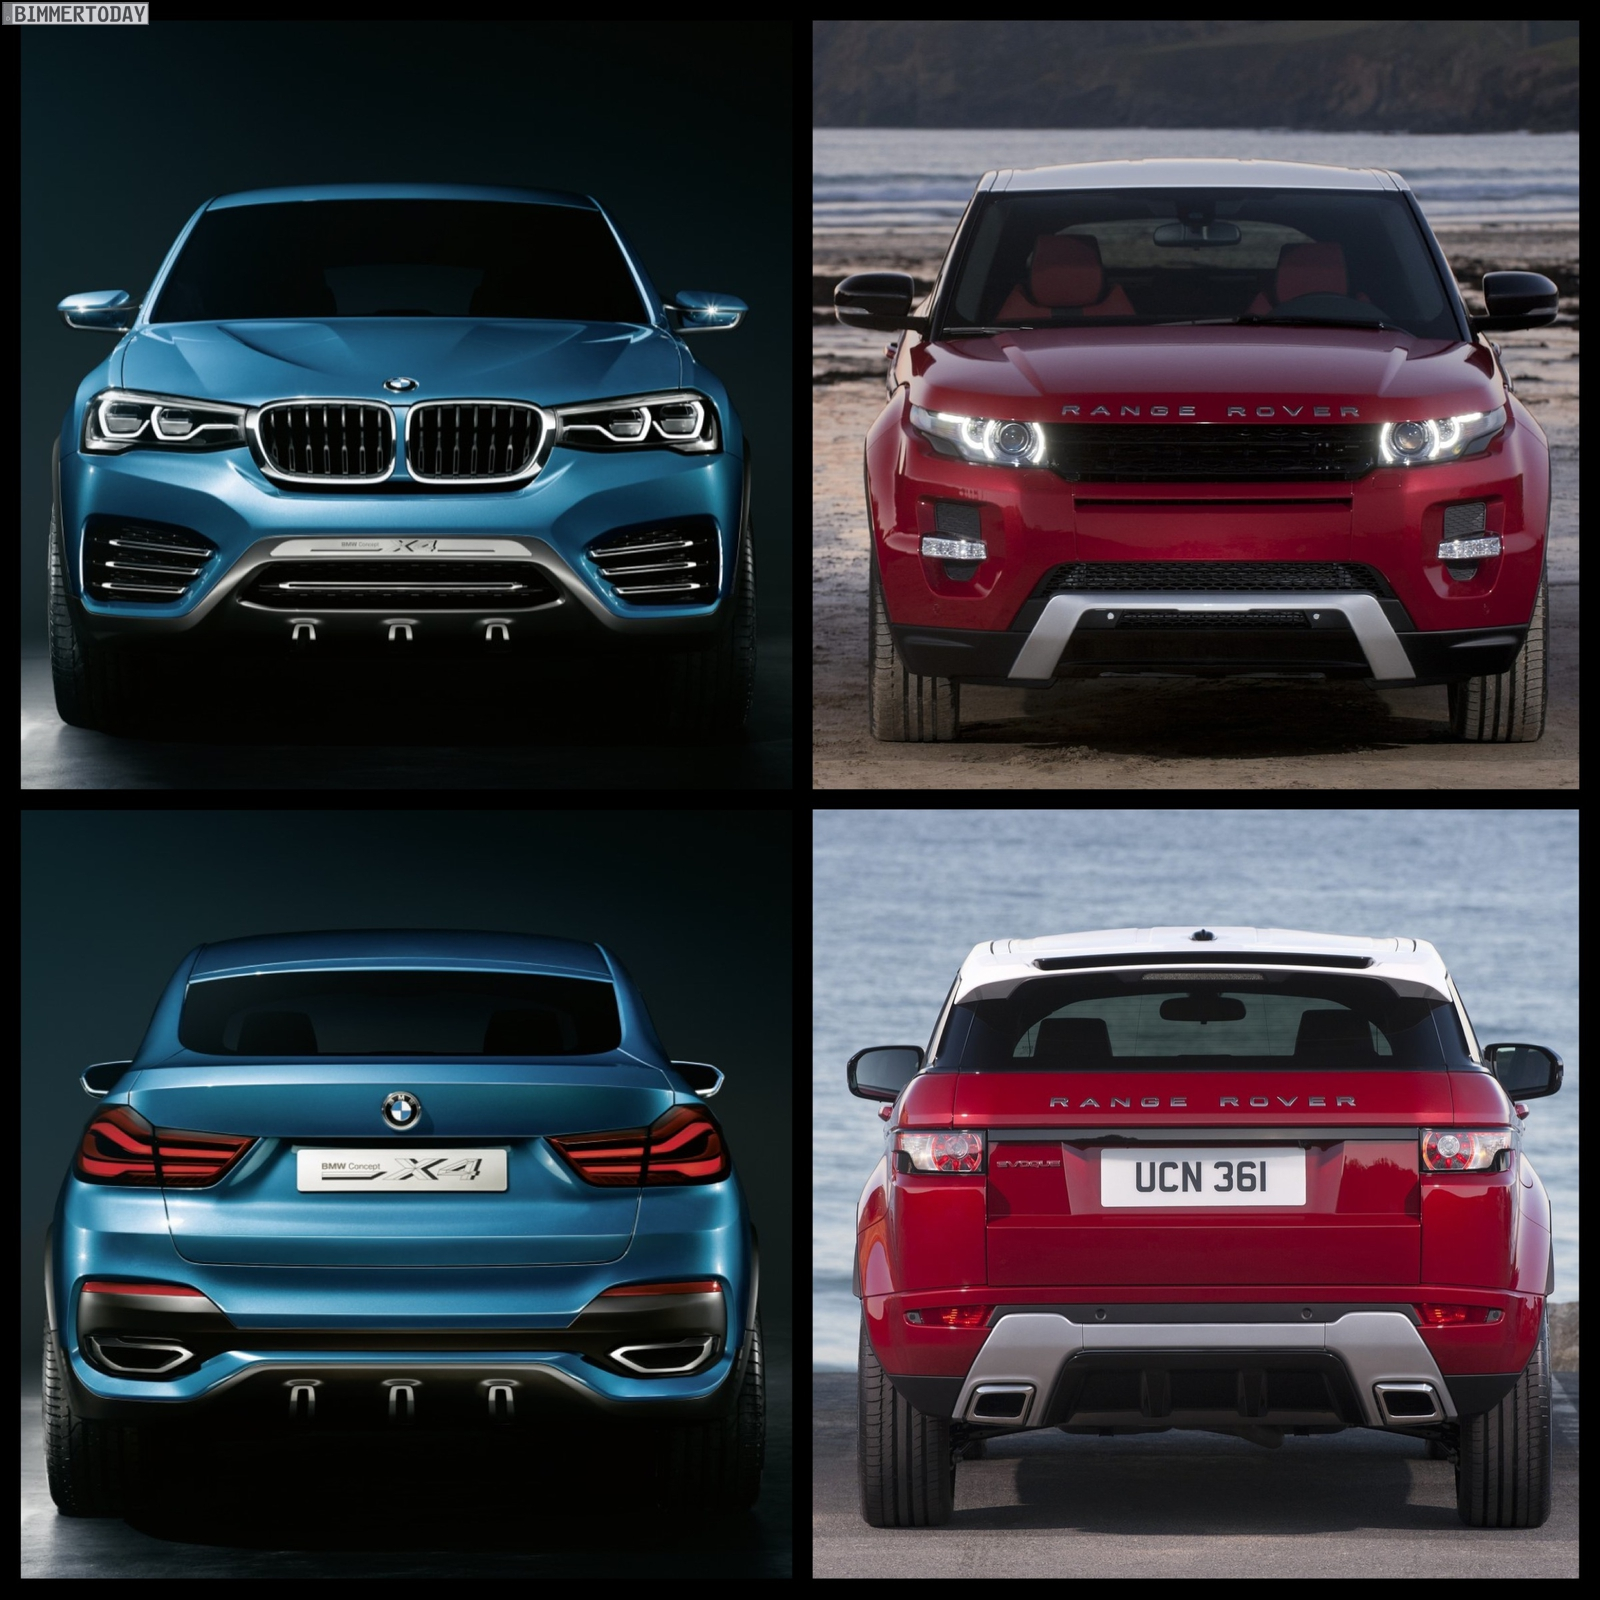 Bmw X7 Interior: BMW X4 Vs Range Rover Evoque